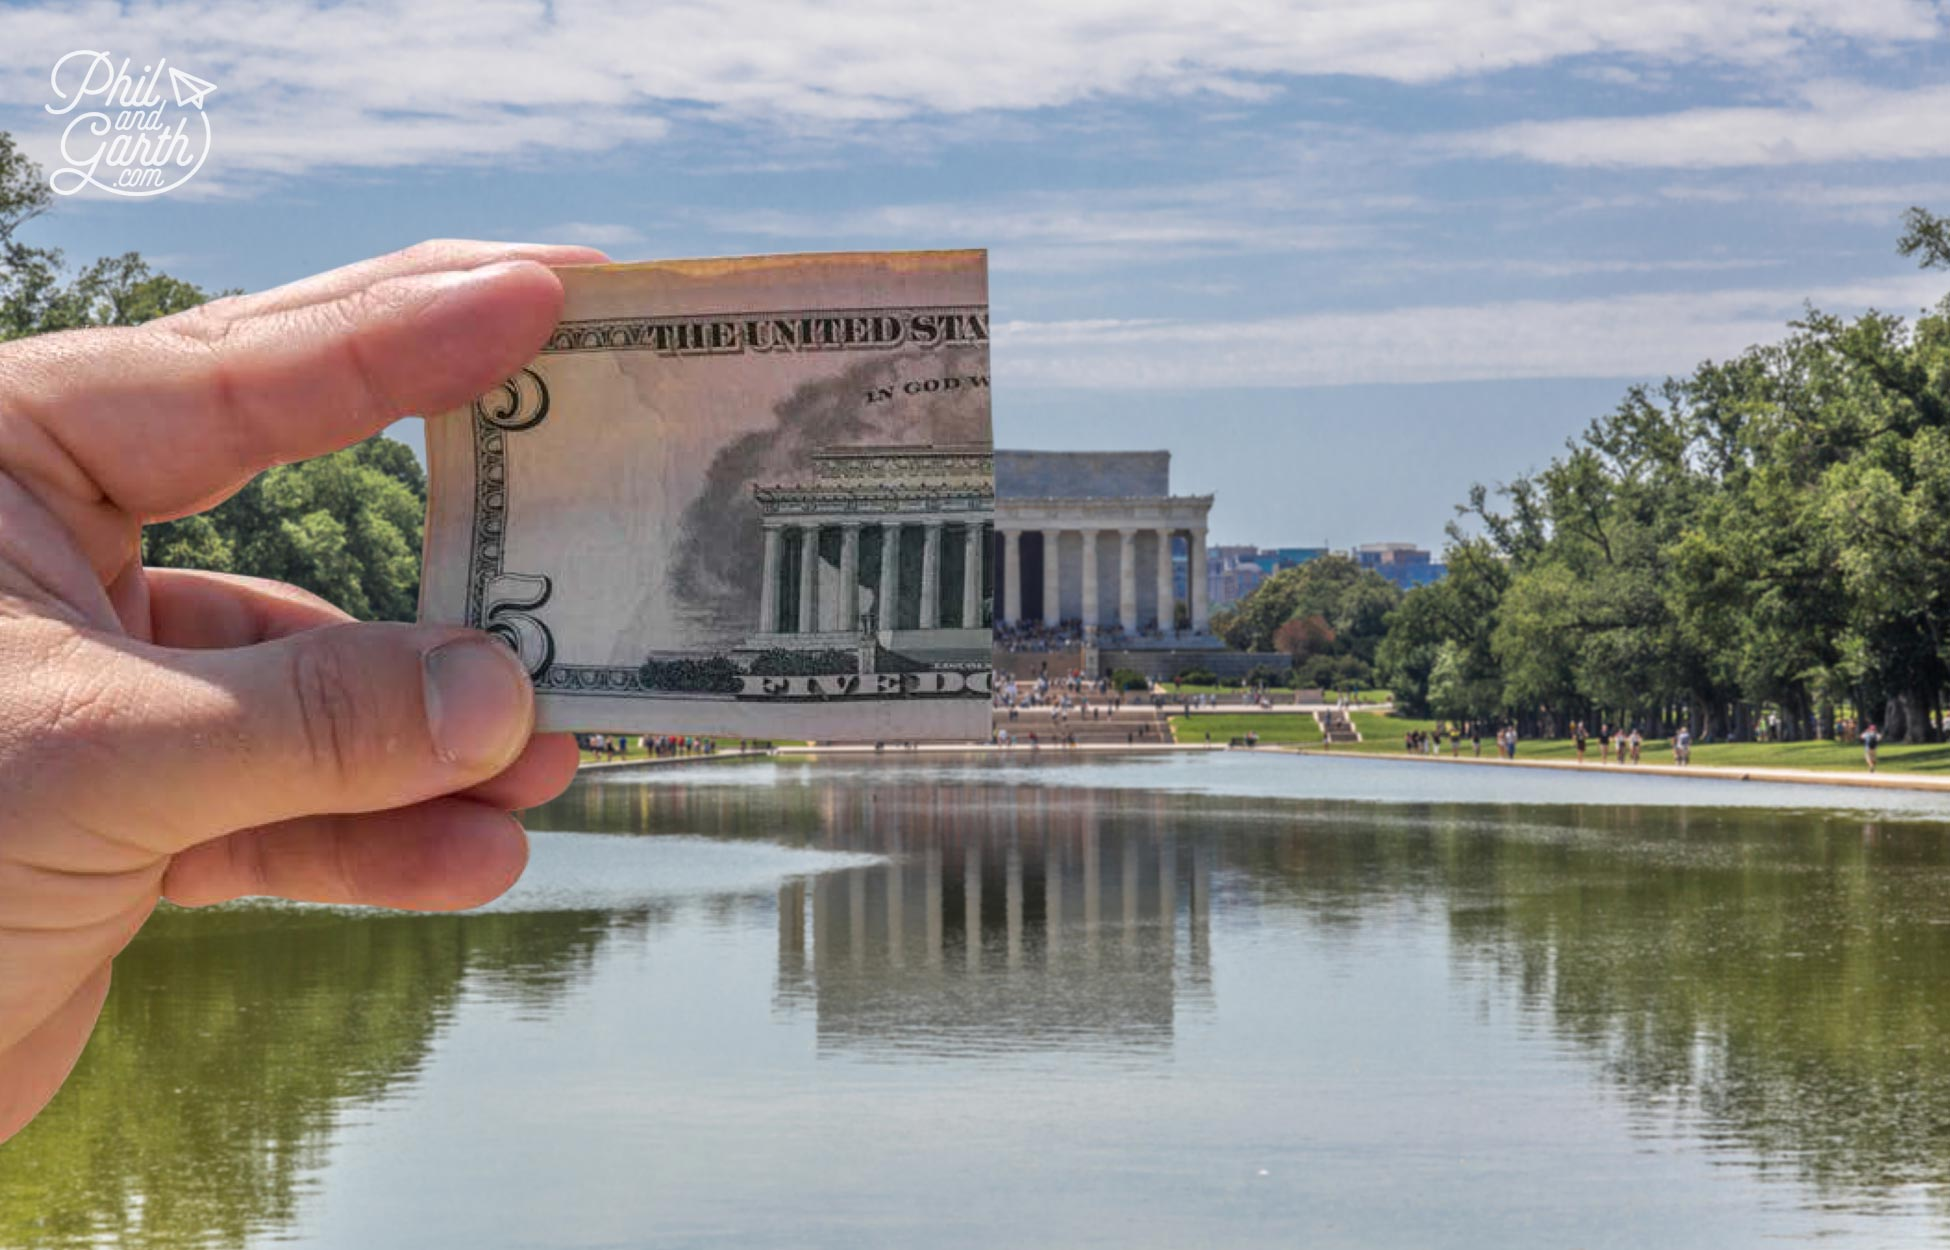 The Lincoln Memorial looks stunning seen in front of the reflection pool. Remember the Forrest Gump scene filmed here?